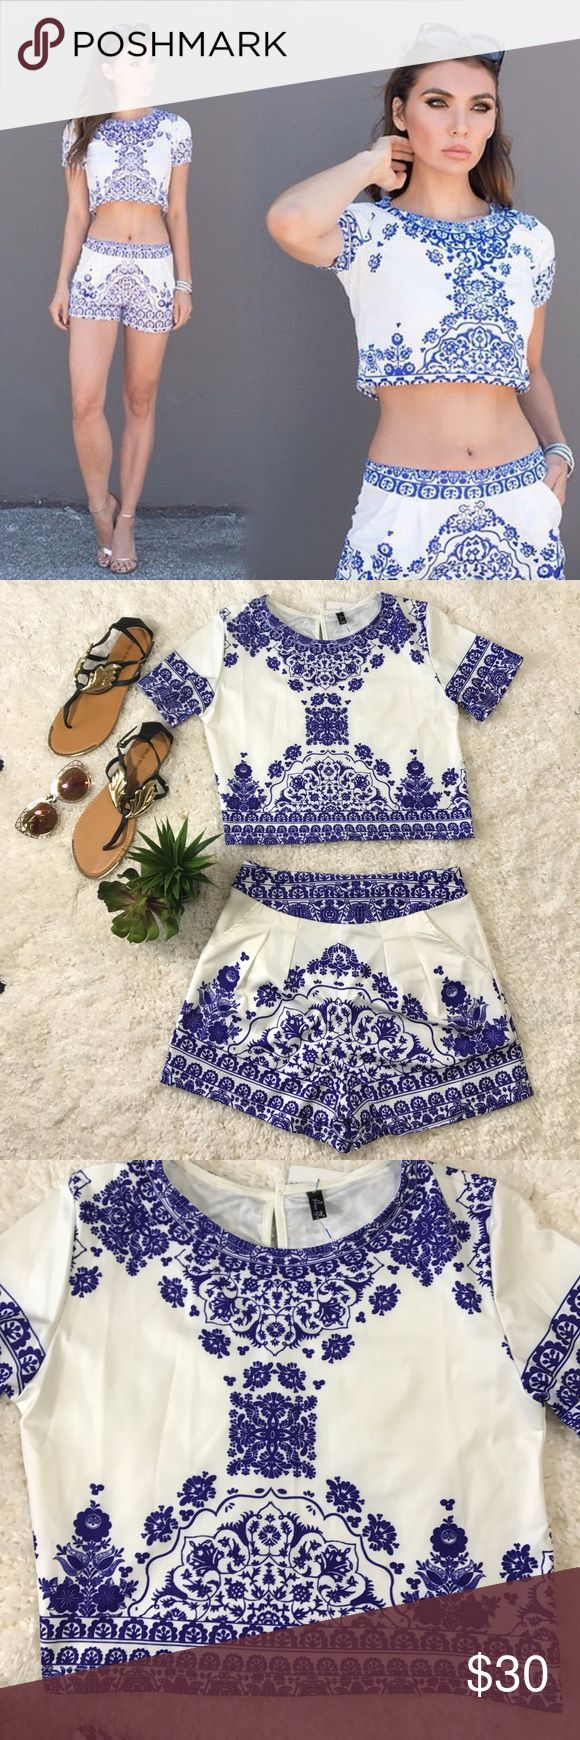 NWT blue Aztec print crop top and shorts set NWT crop top and shorts set. Shorts have pockets on each side. Semi stretchy material. Tops Crop Tops